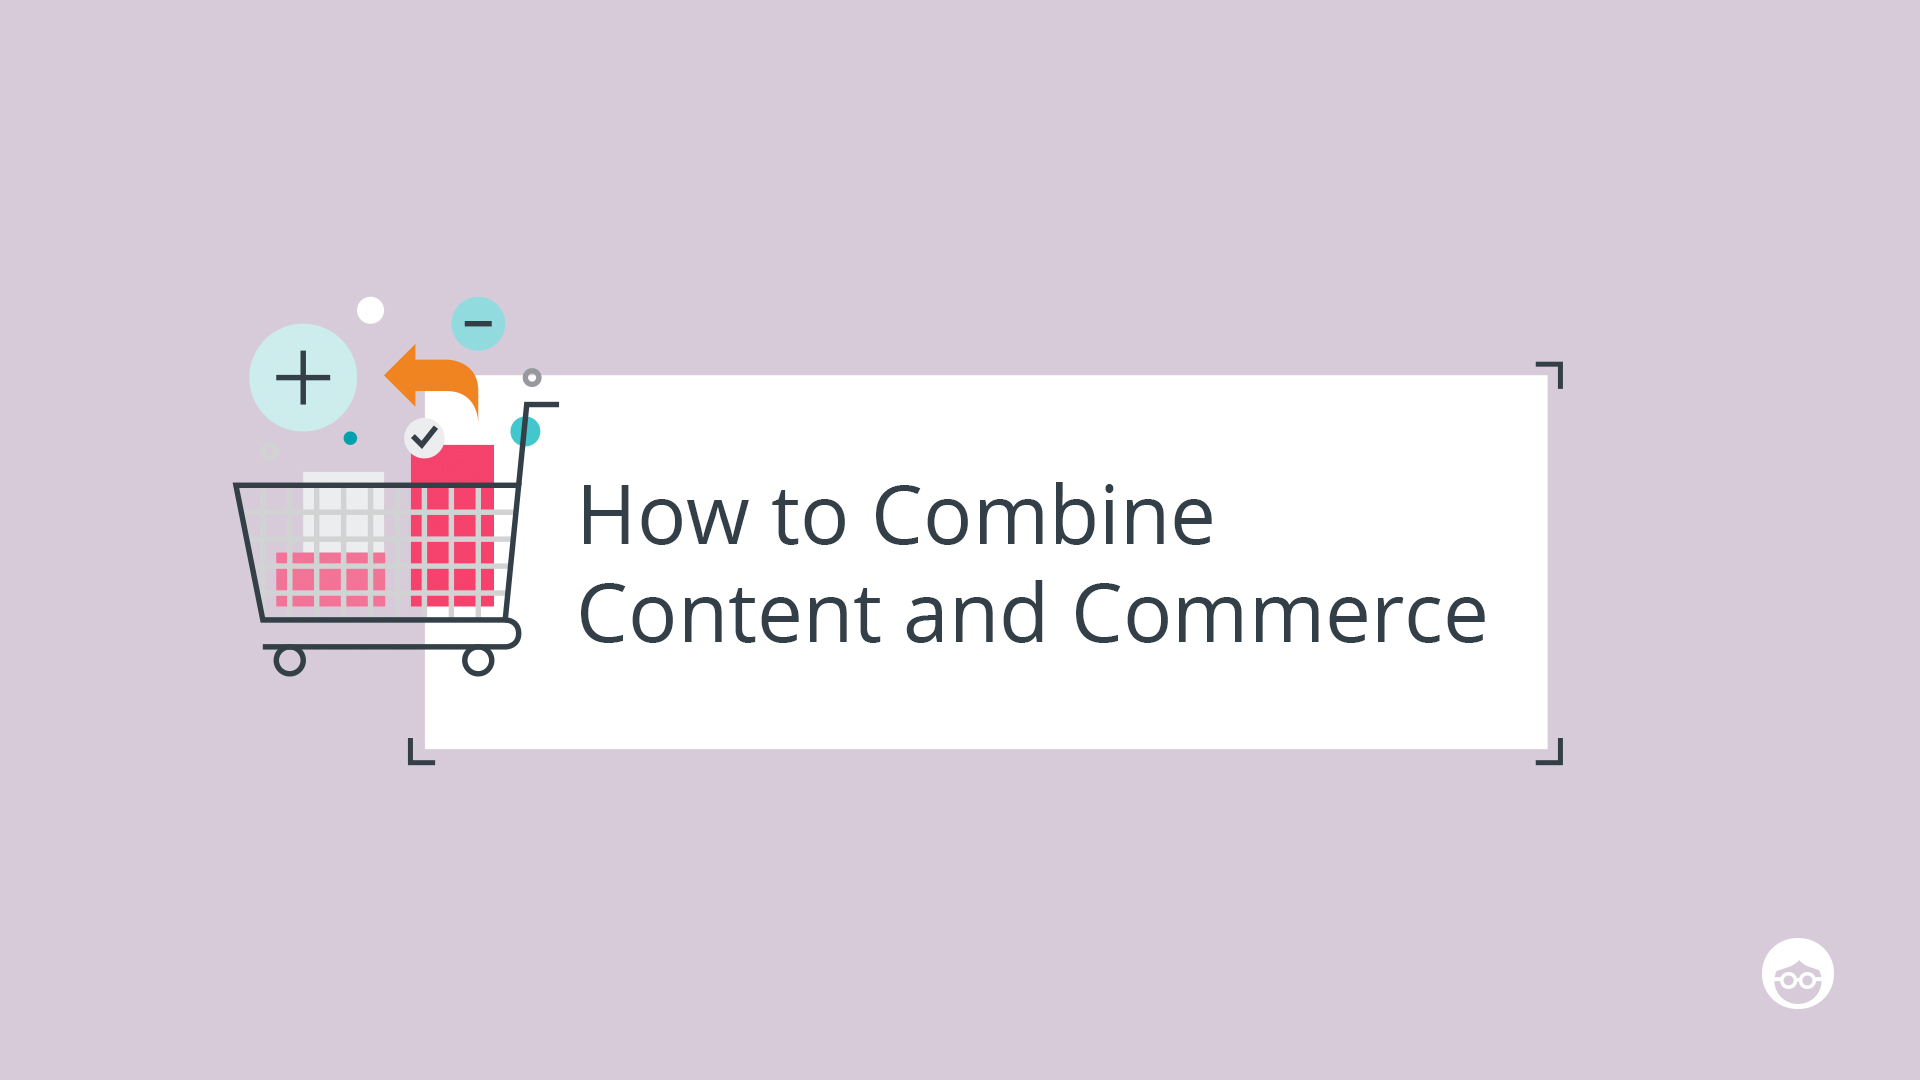 Content and Commerce